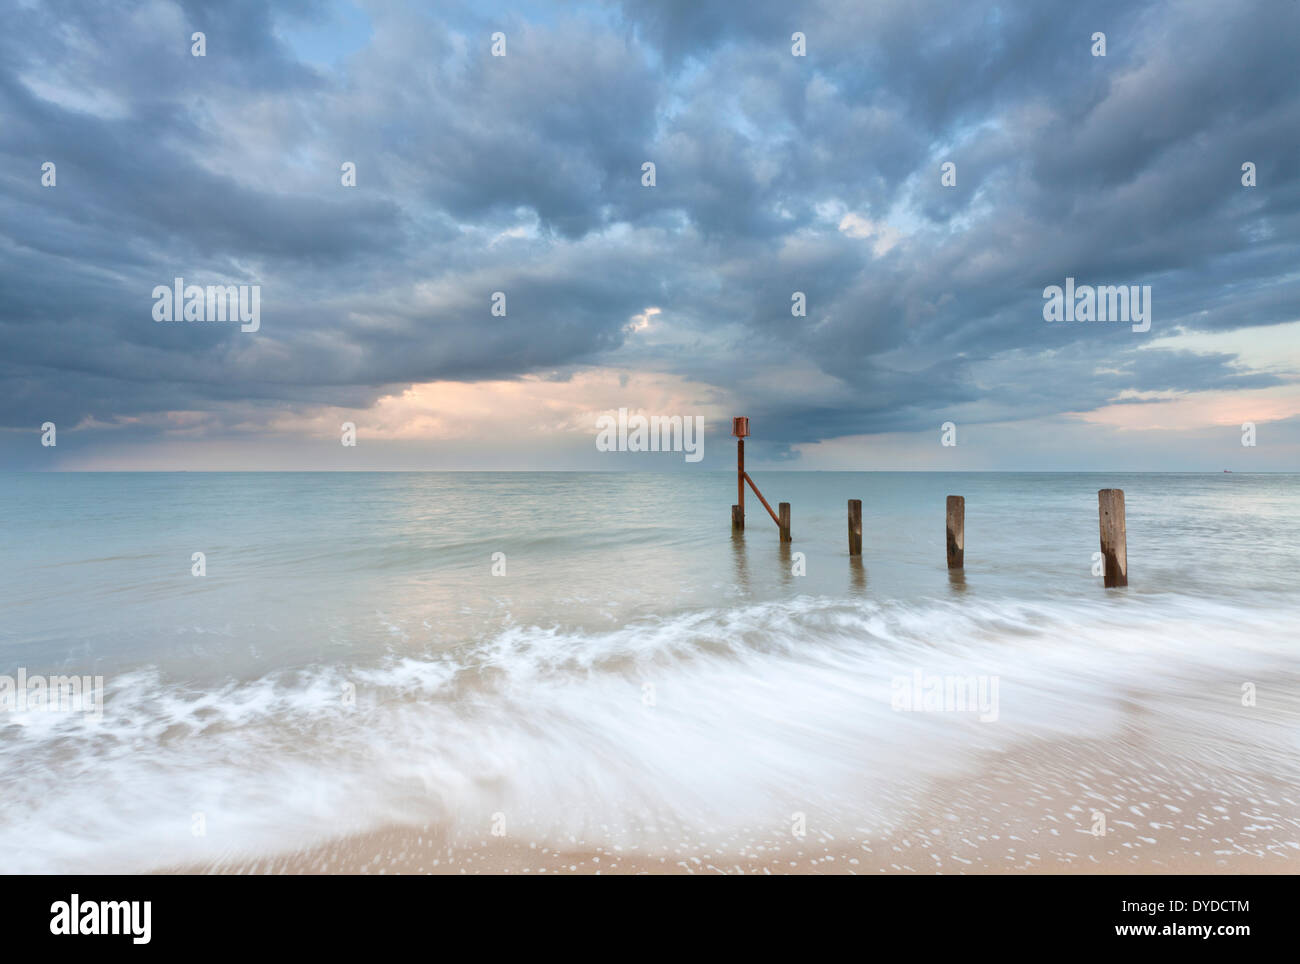 A storm passes over Horsey beach on the Norfolk coast. - Stock Image